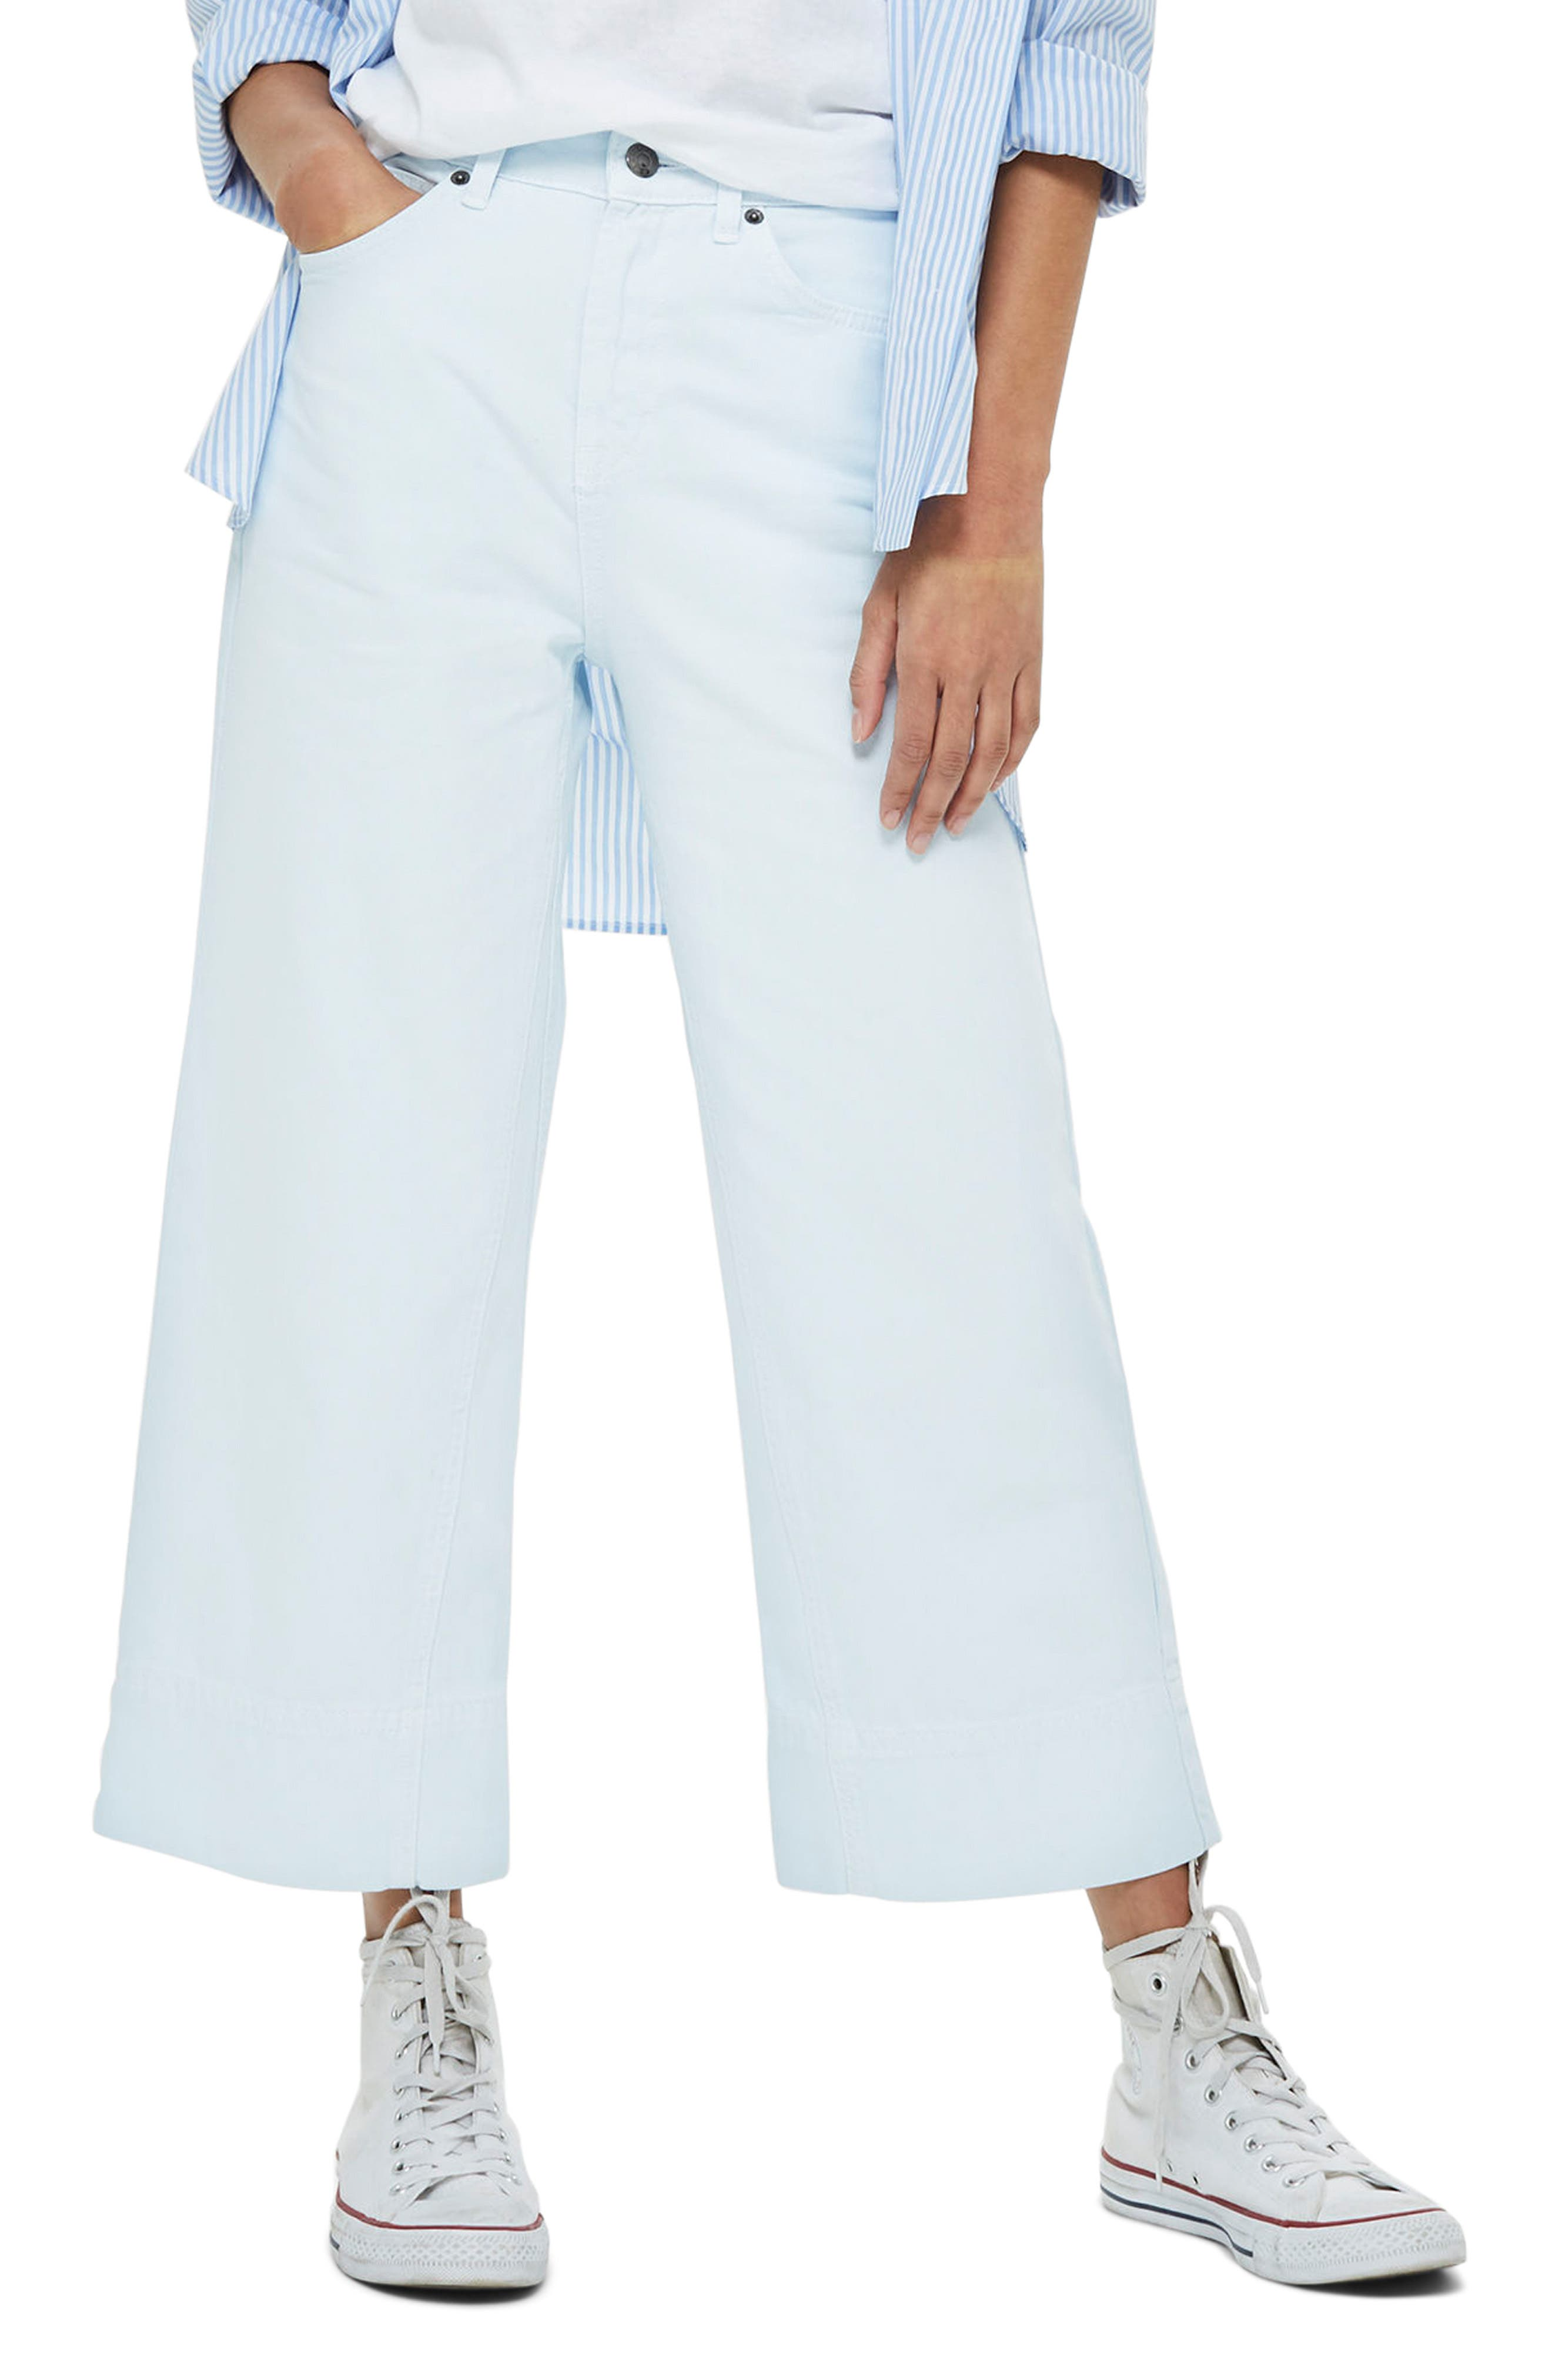 Topshop Pale Blue Crop Wide Leg Jeans